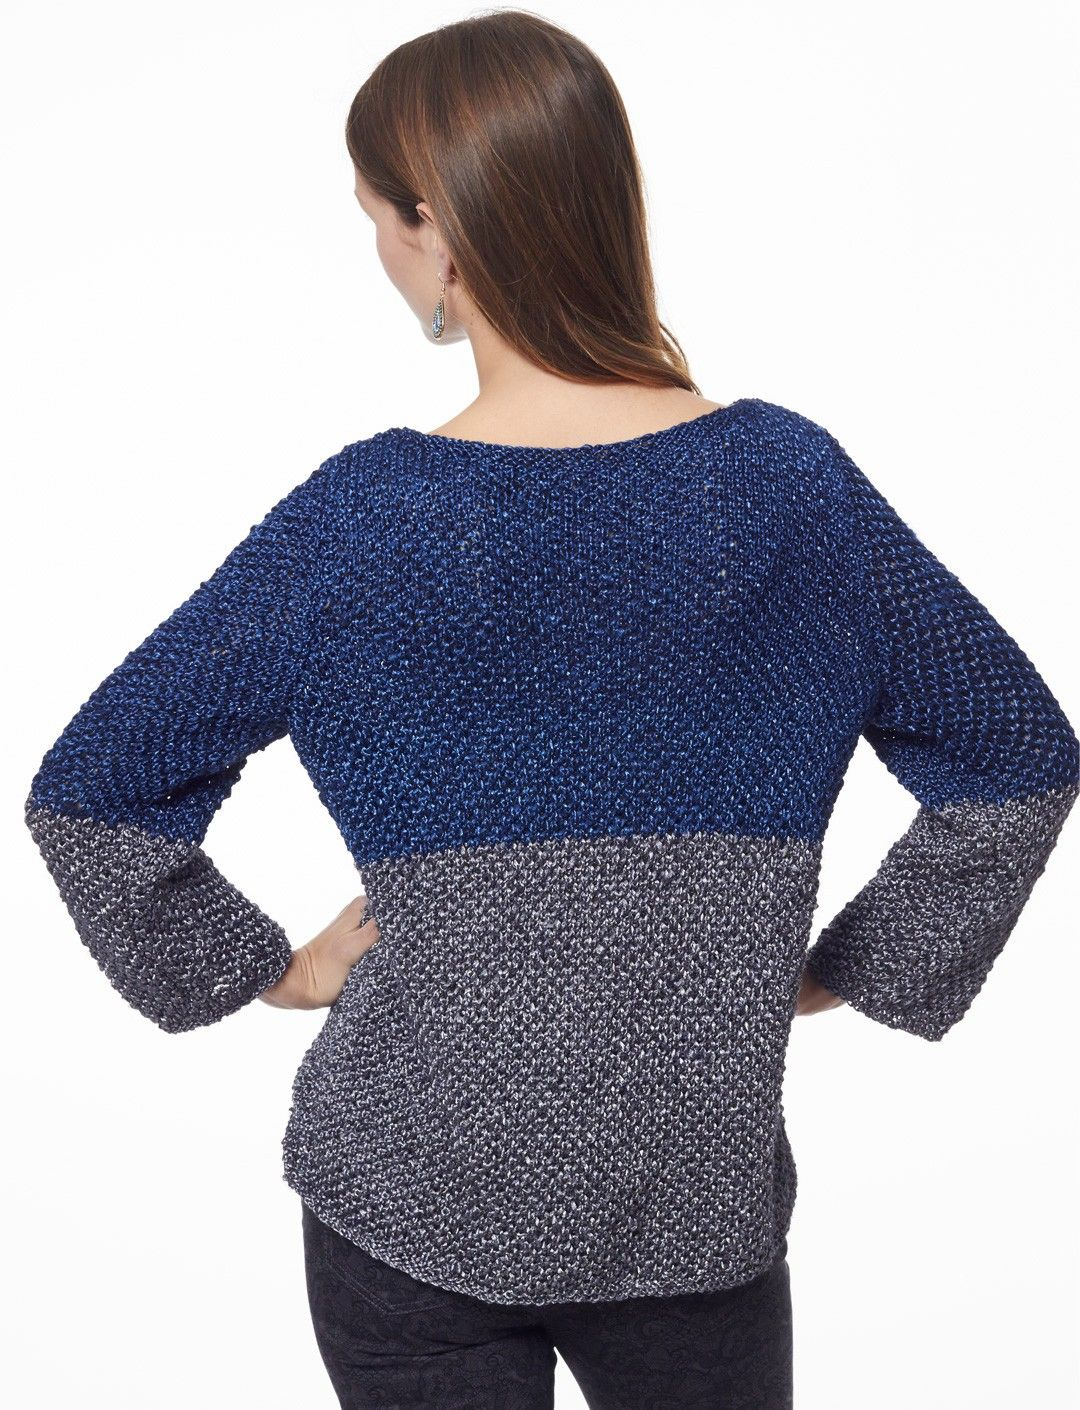 Yarnspirations.com - Patons Color Dipped Top - Patterns ...